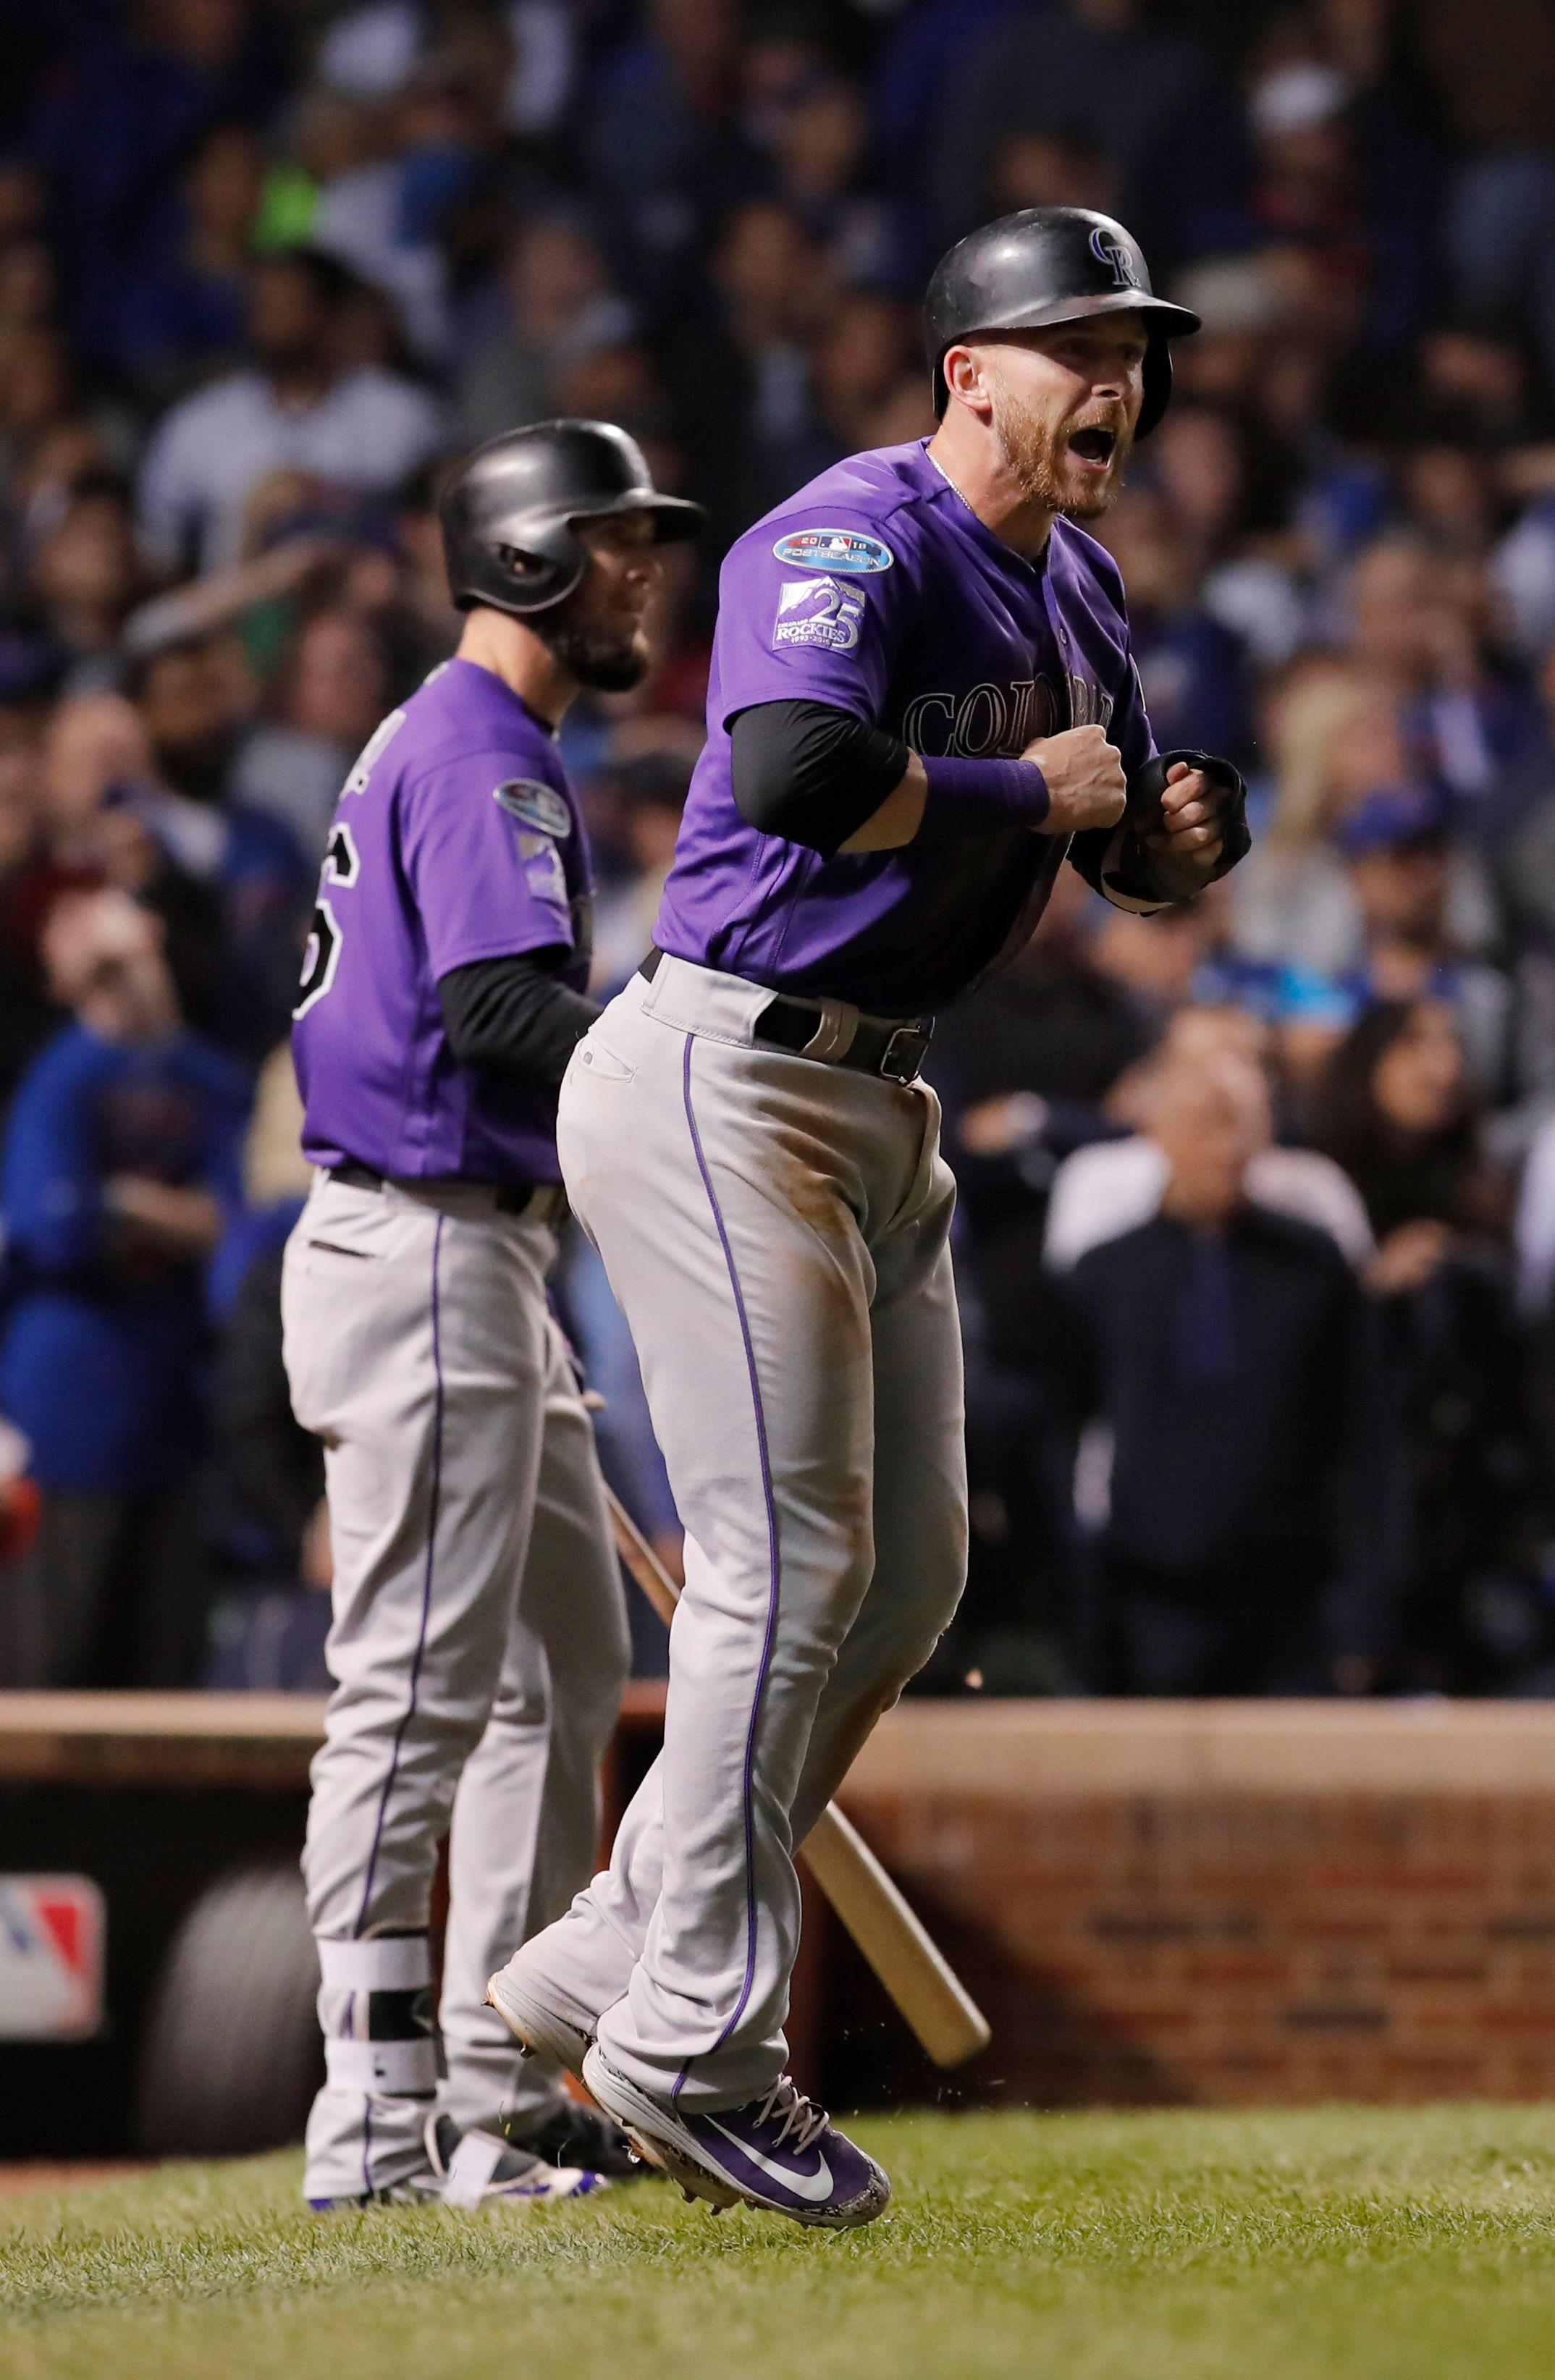 Rockies defeat Cubs in NL wild card, advance to play Brewers in Division Series